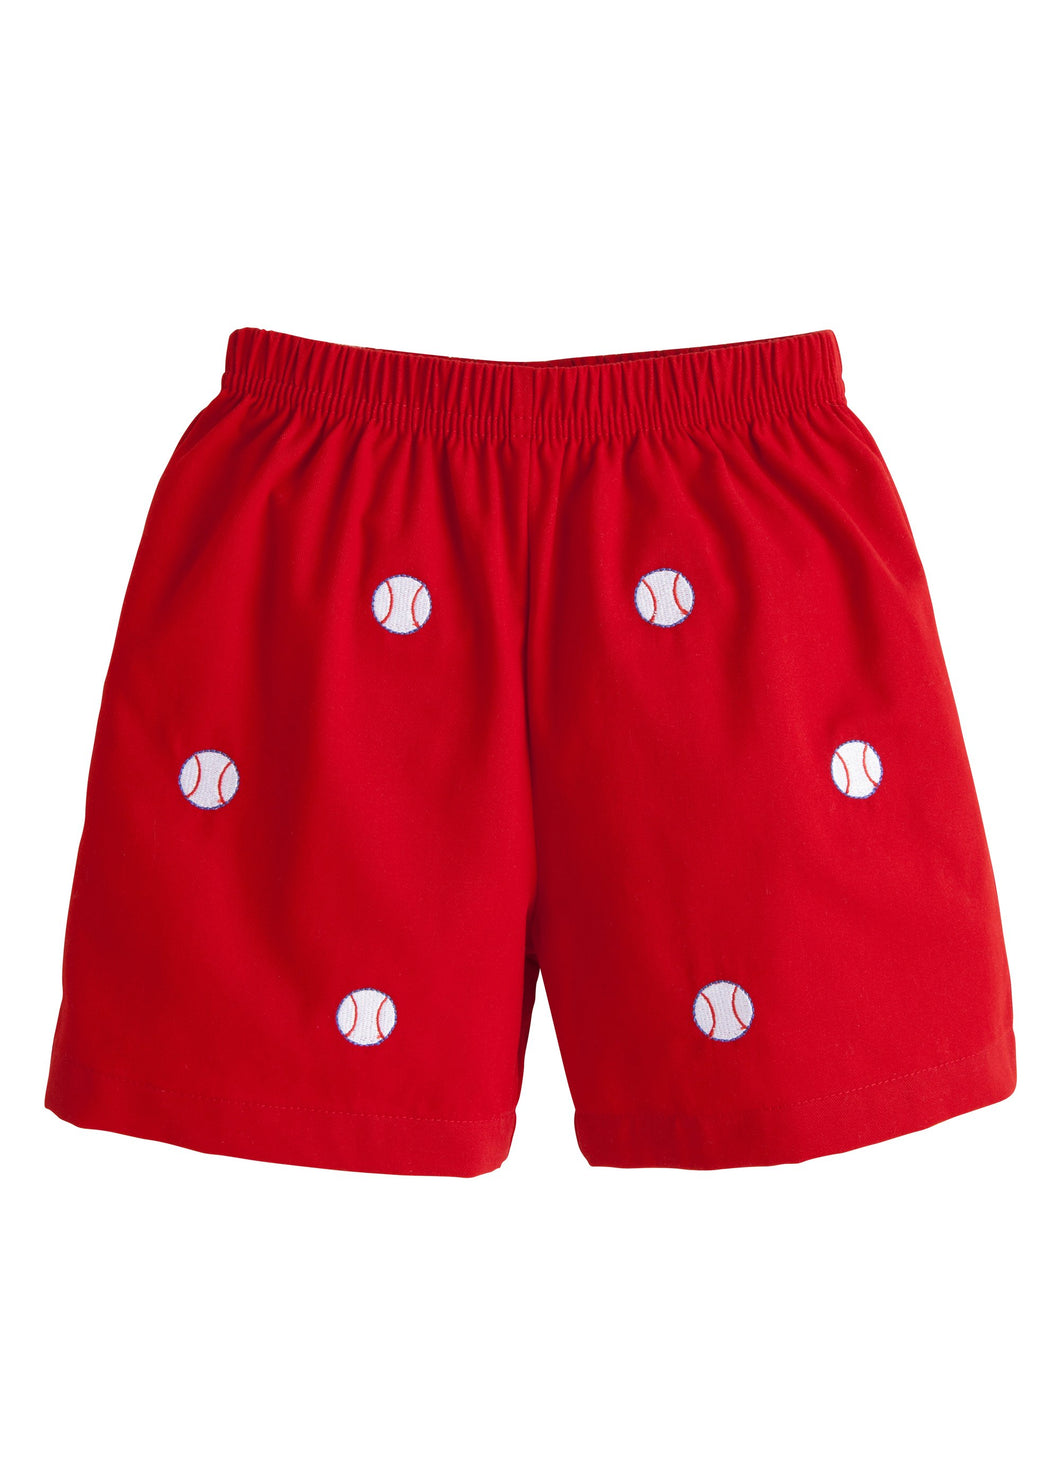 Baseball Embroidered Shorts